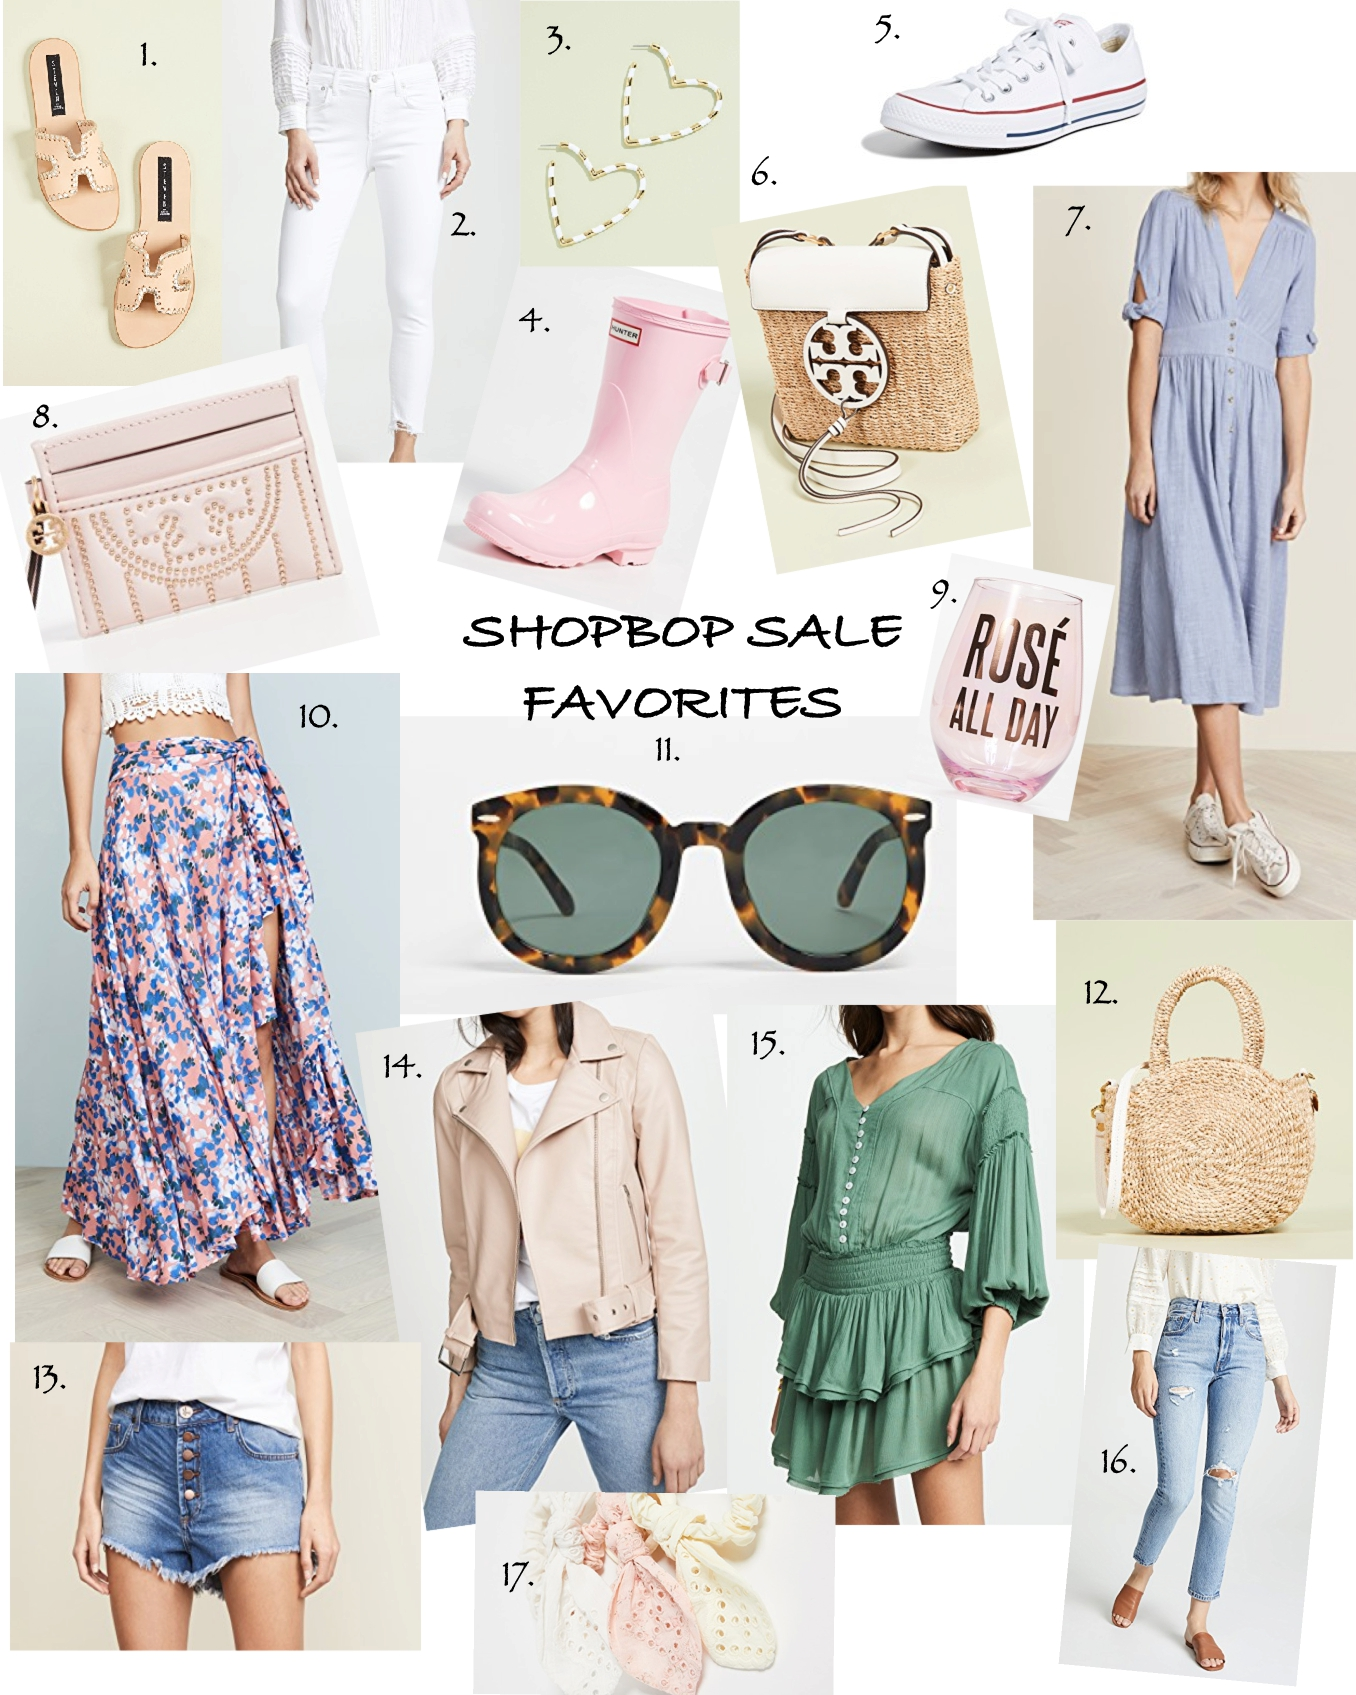 spring fashion trends, spring biggest 2019 trends on sale, shopbop, what trends to invest-in, how to buy designer on sale